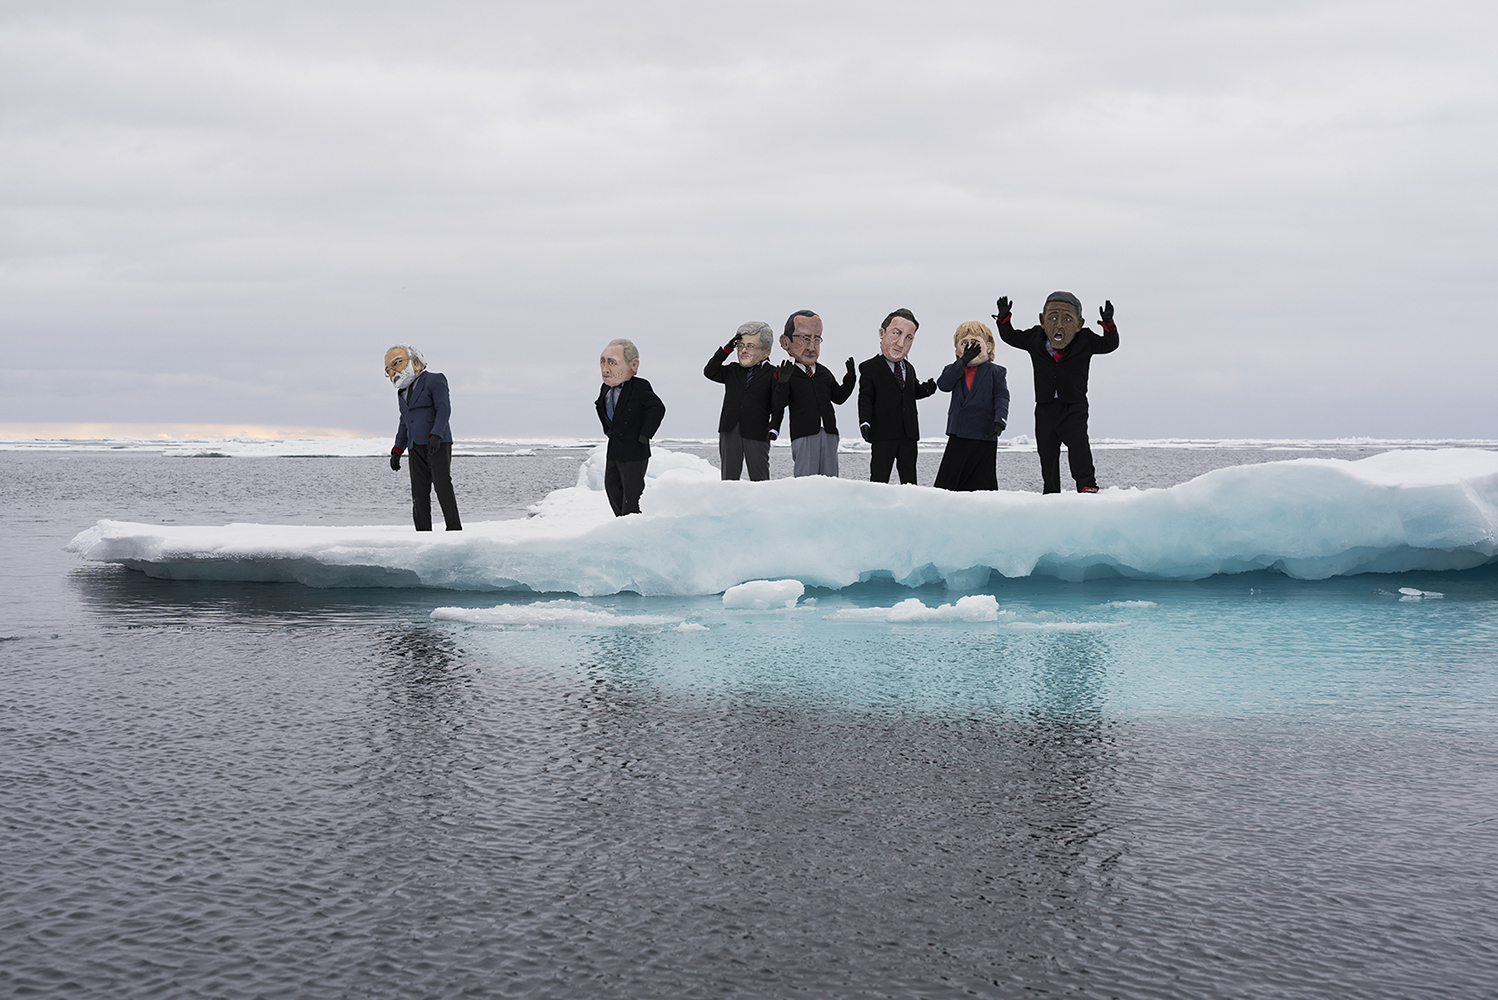 Heads of state stuck on the ice